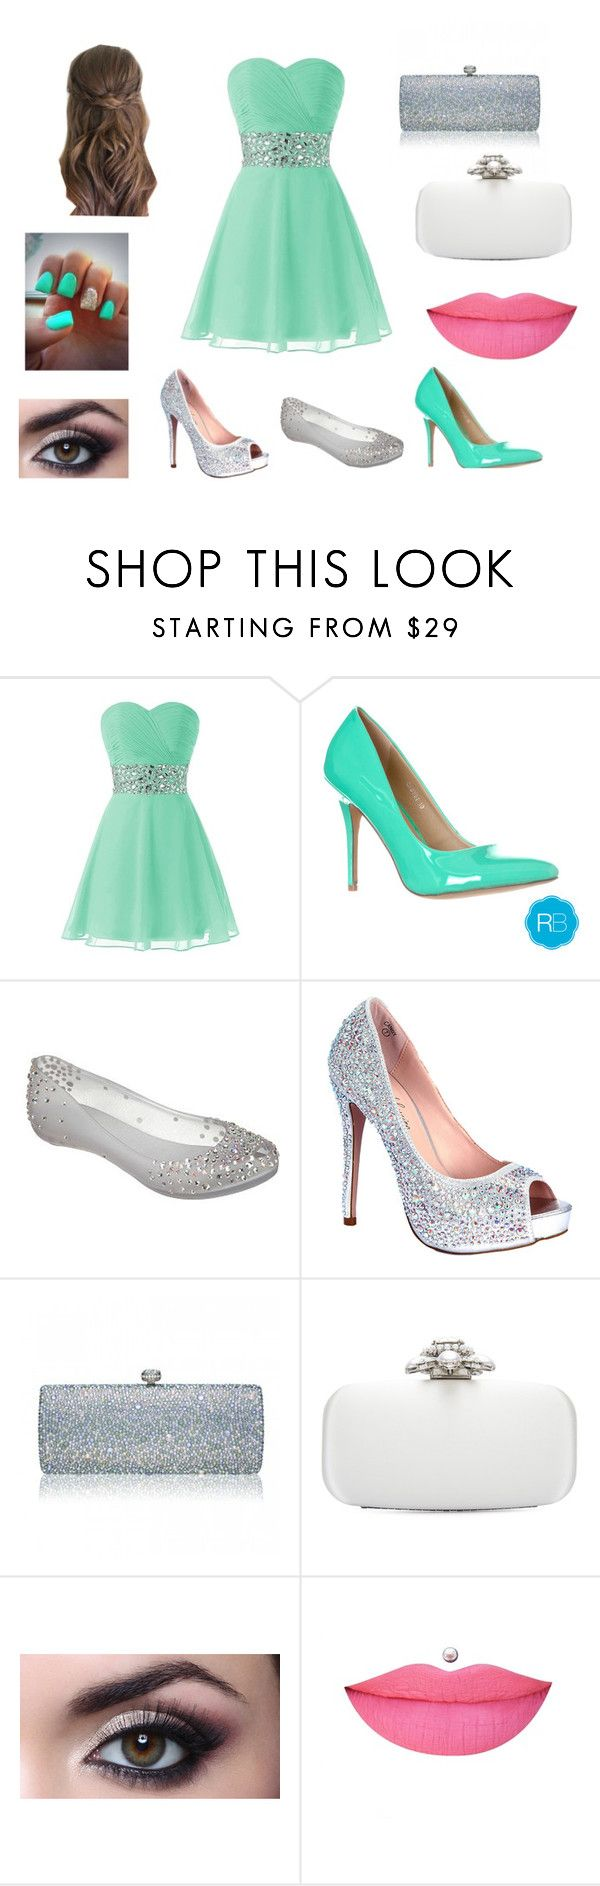 """""""Turquoise and glitter banquet"""" by cocofruit22 ❤ liked on Polyvore featuring Melissa, Lauren Lorraine, Oscar de la Renta and Anastasia Beverly Hills"""